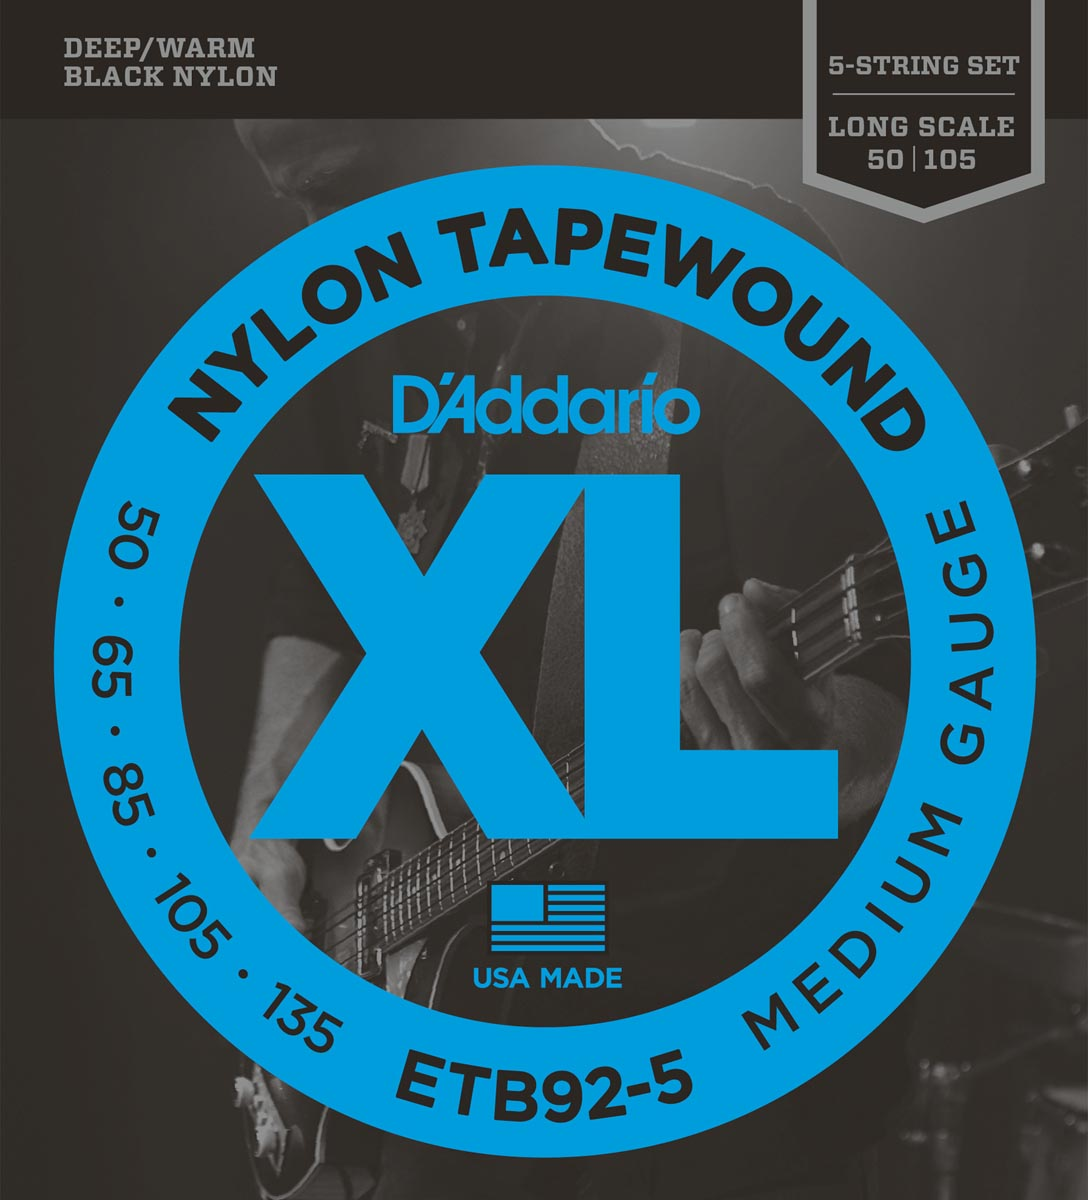 DADDARIO ETB92-5 TAPEWOUND 5-STRING MEDIUM LONG SCALE [50-135]